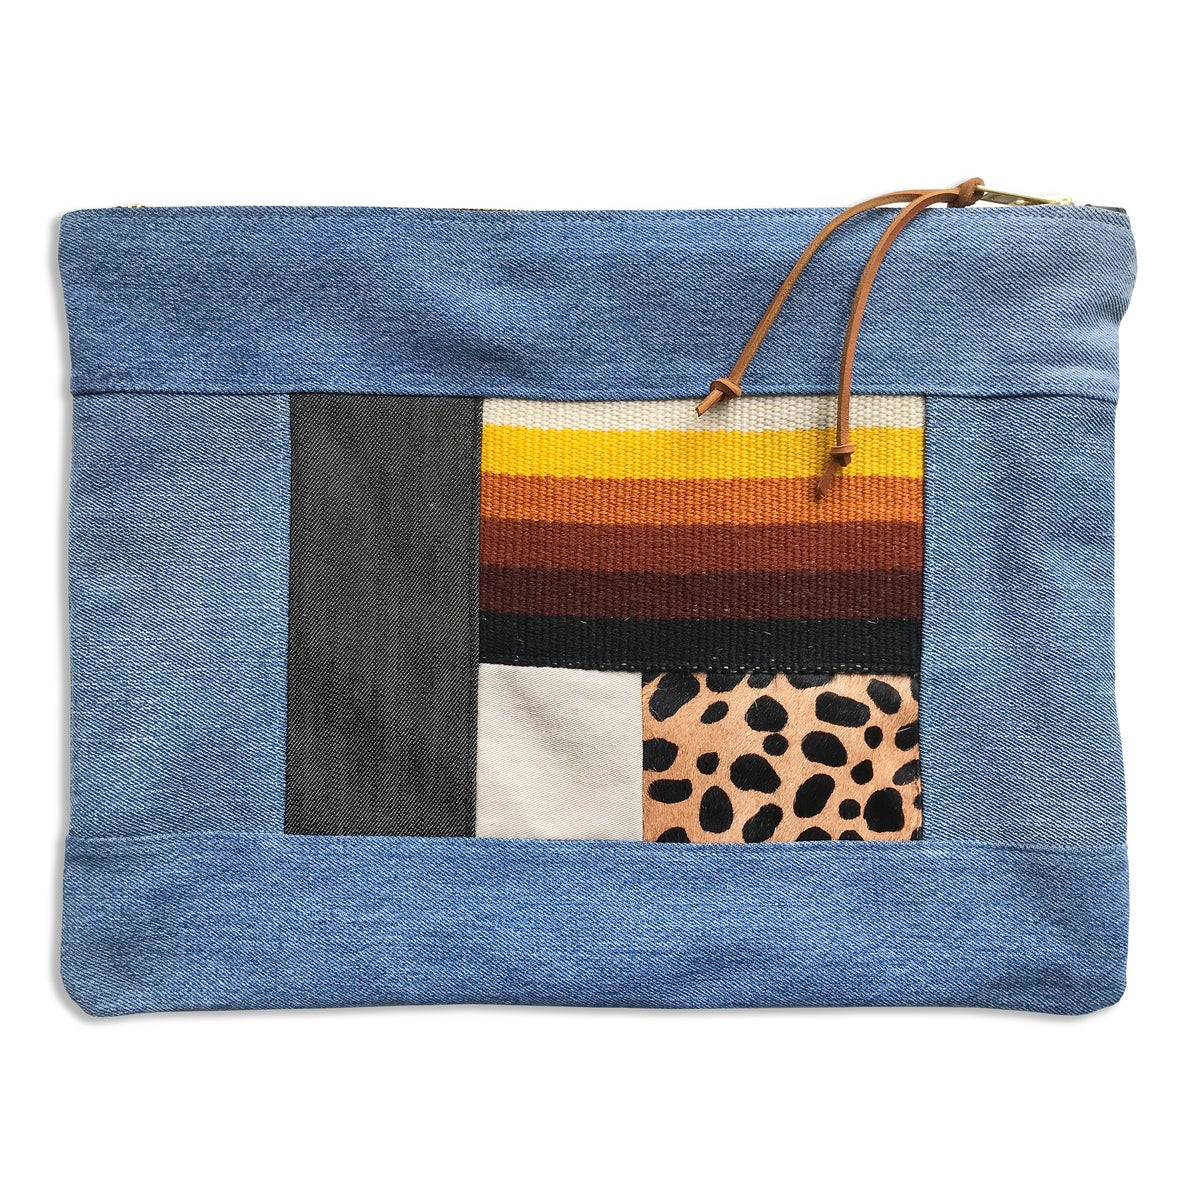 Image of COLLAGE POUCH 1 - LARGE